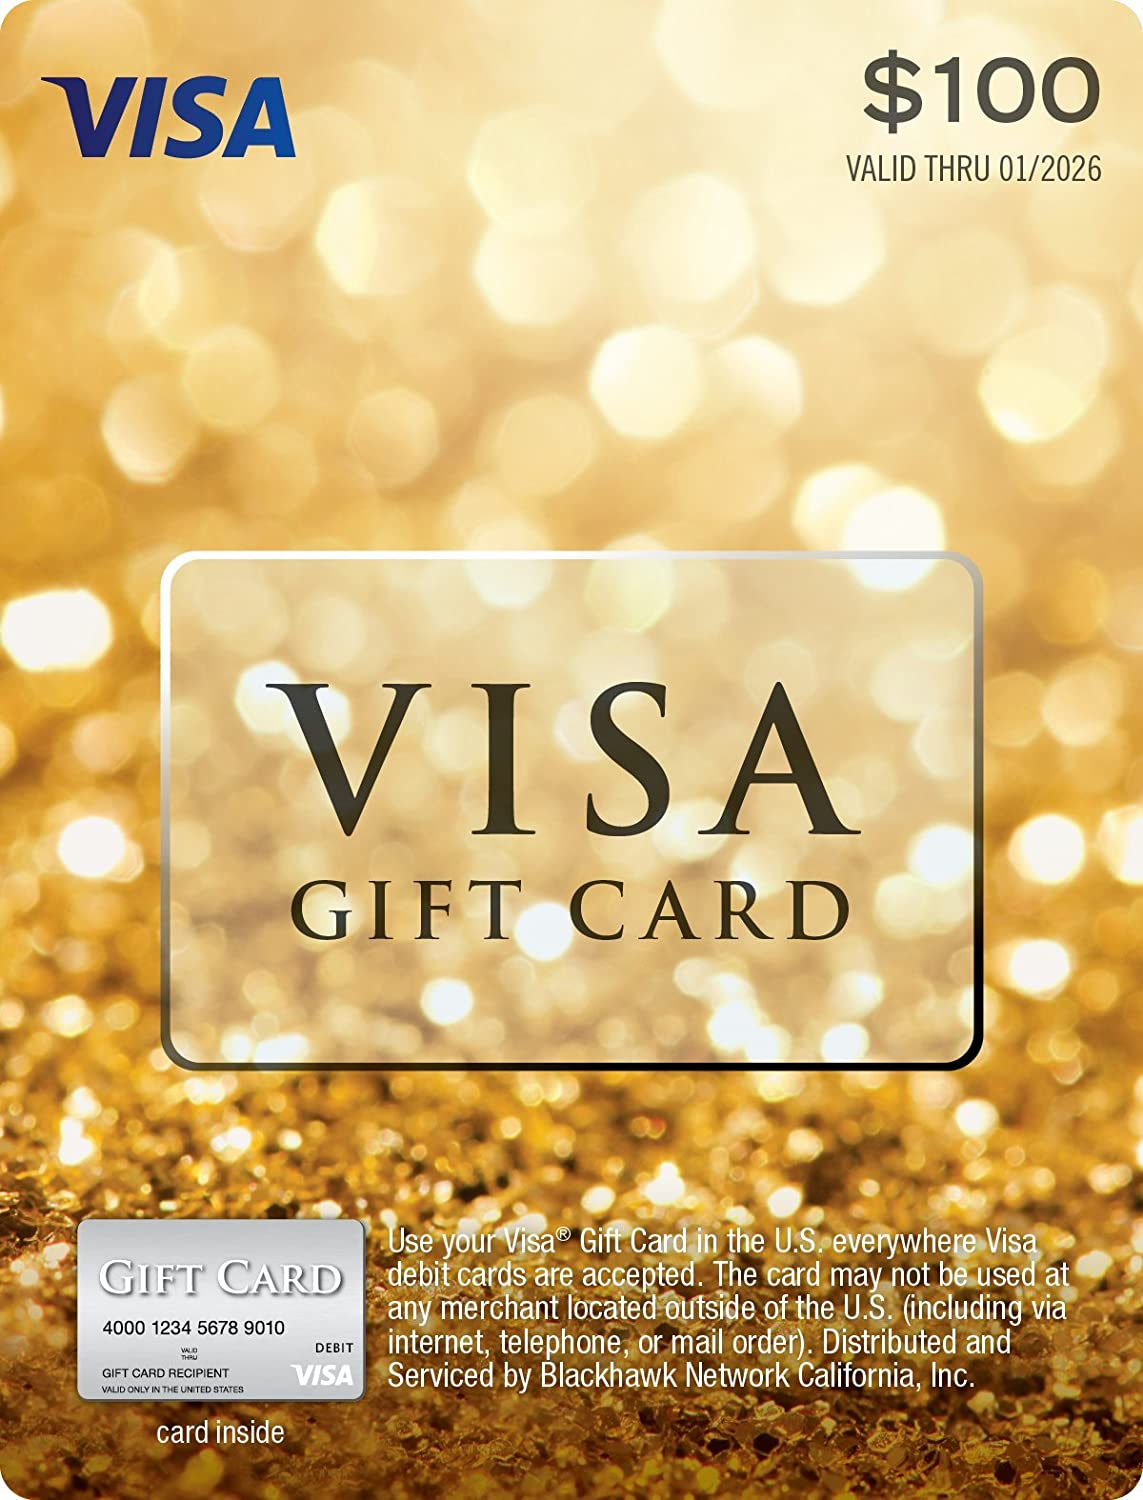 Amazon.com: $100 Visa Gift Card (plus $5.95 Purchase Fee): Gift Cards